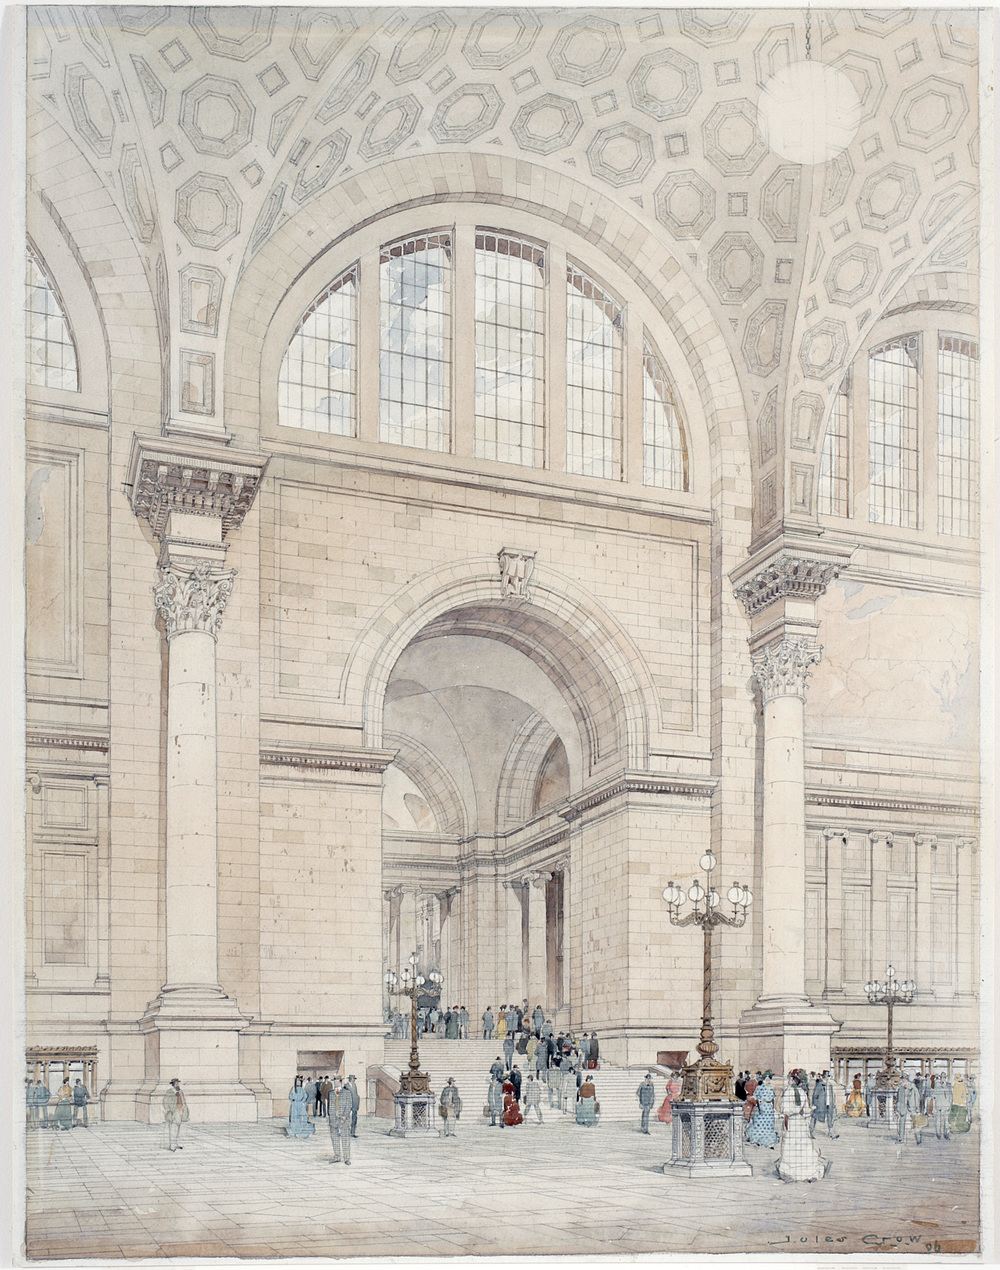 Jules Crow, Pennsylvania Station Interior, 1906. Watercolor, Ink and Graphite on Paper. New-York Historical Society, PR042, Mckim, Mead & White Collection